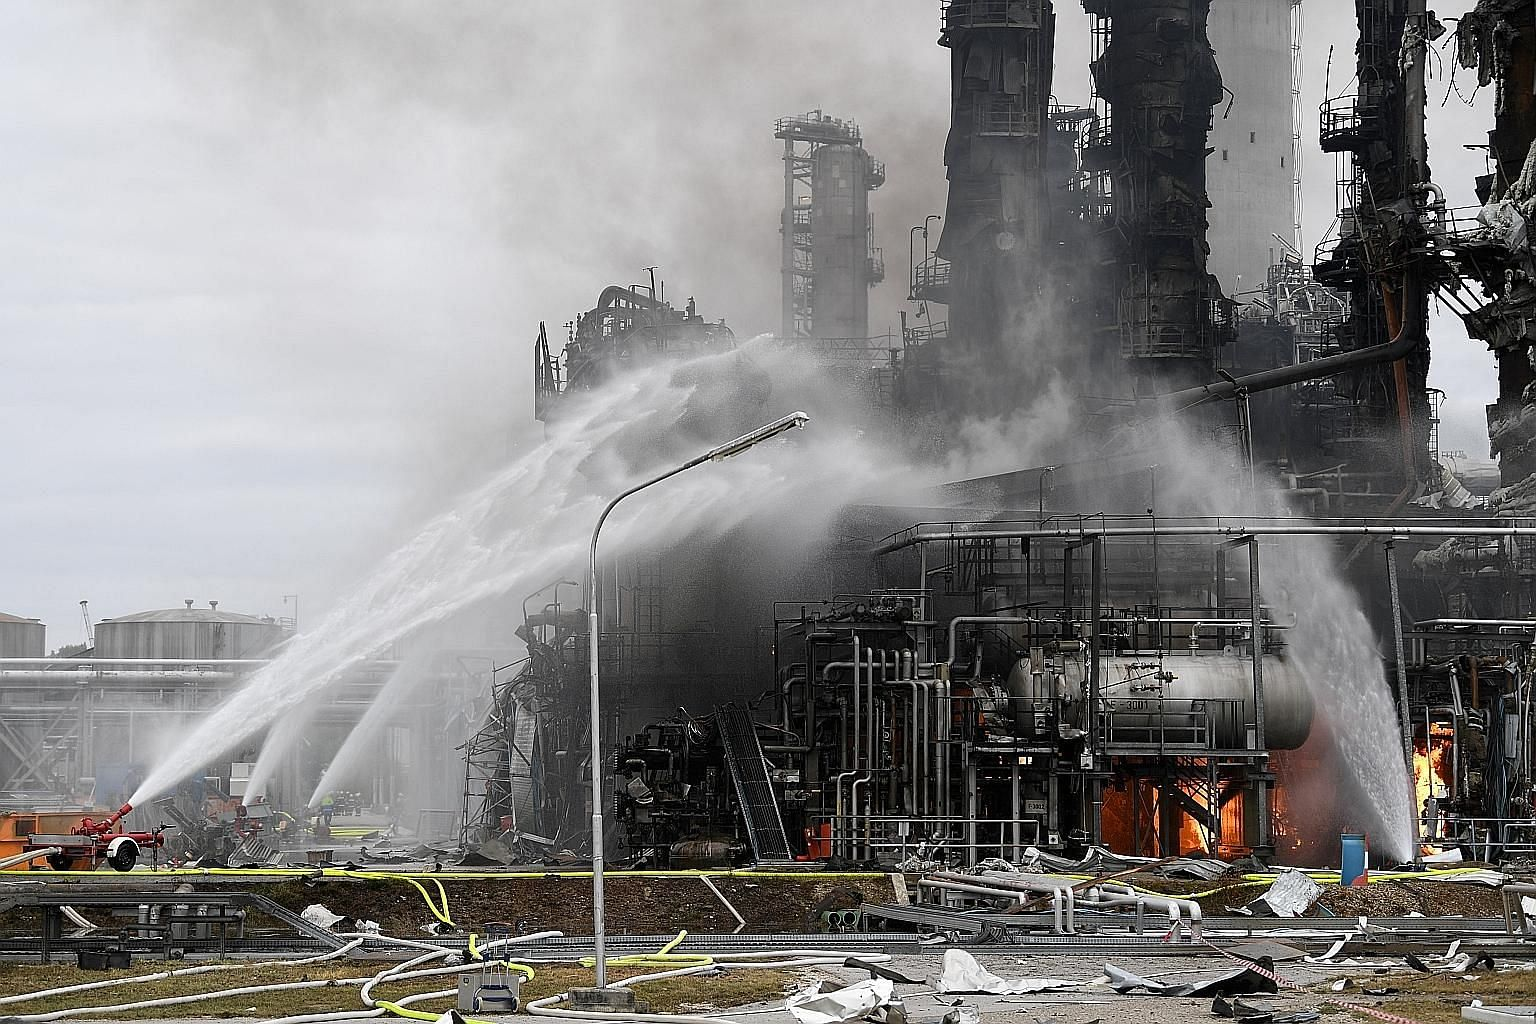 Nearly 600 firefighters, police and rescue workers were mobilised after a fire erupted at a refinery in southern Germany following an explosion last Saturday.